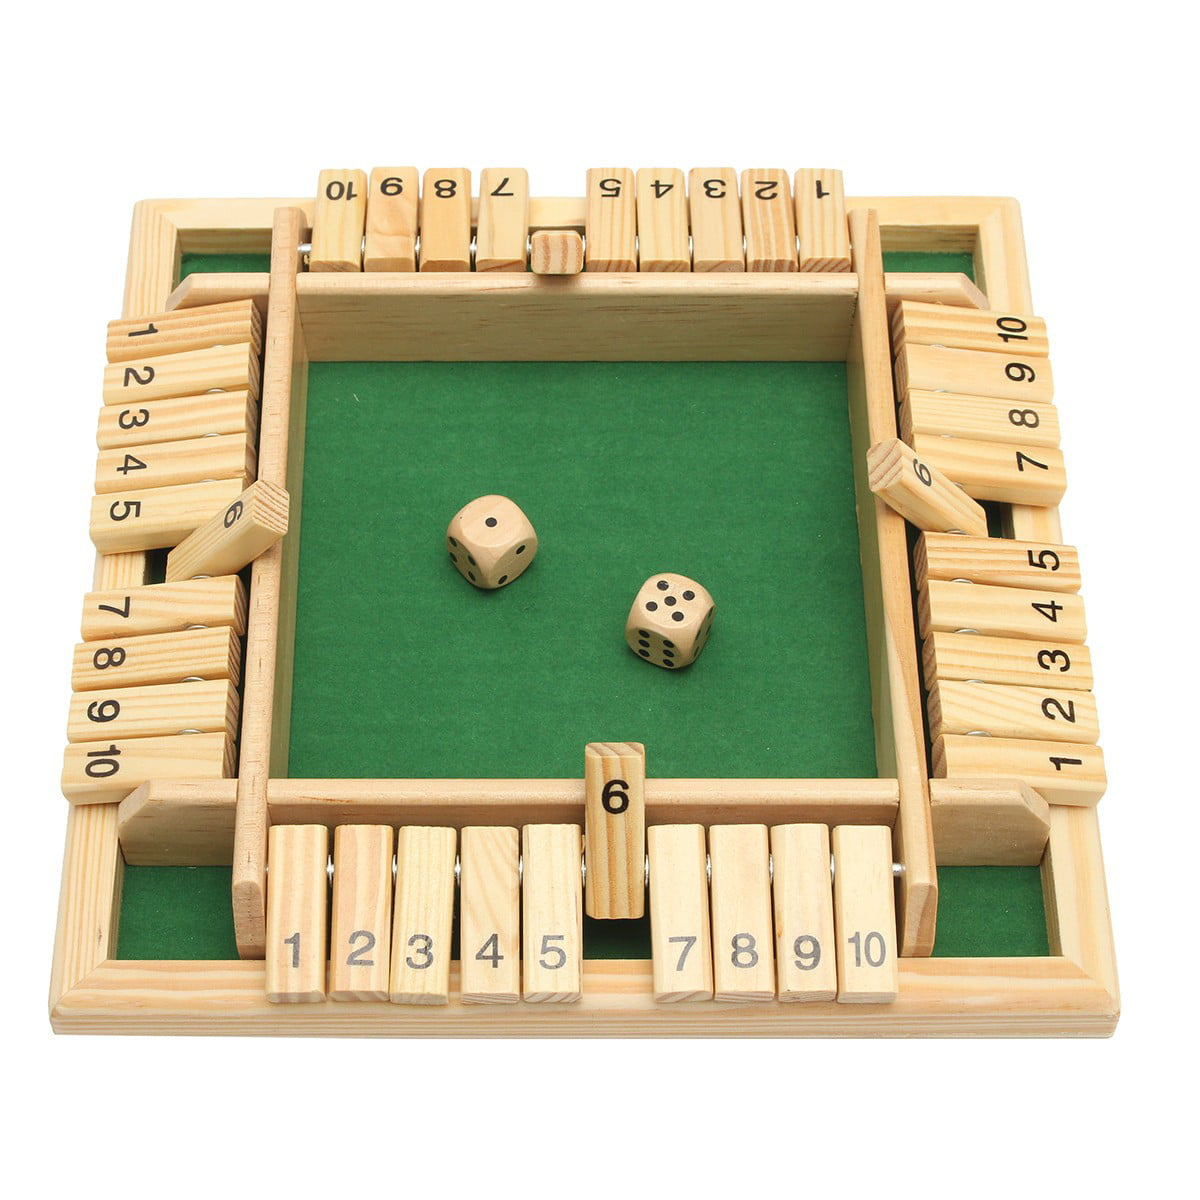 10 Numbers Traditional Wooden Board Game Set Pub Bar Game Family Dice Game Kids And Adults For Shut The Box 8 66 X 8 66 X 1 30 Inch Walmart Com Walmart Com